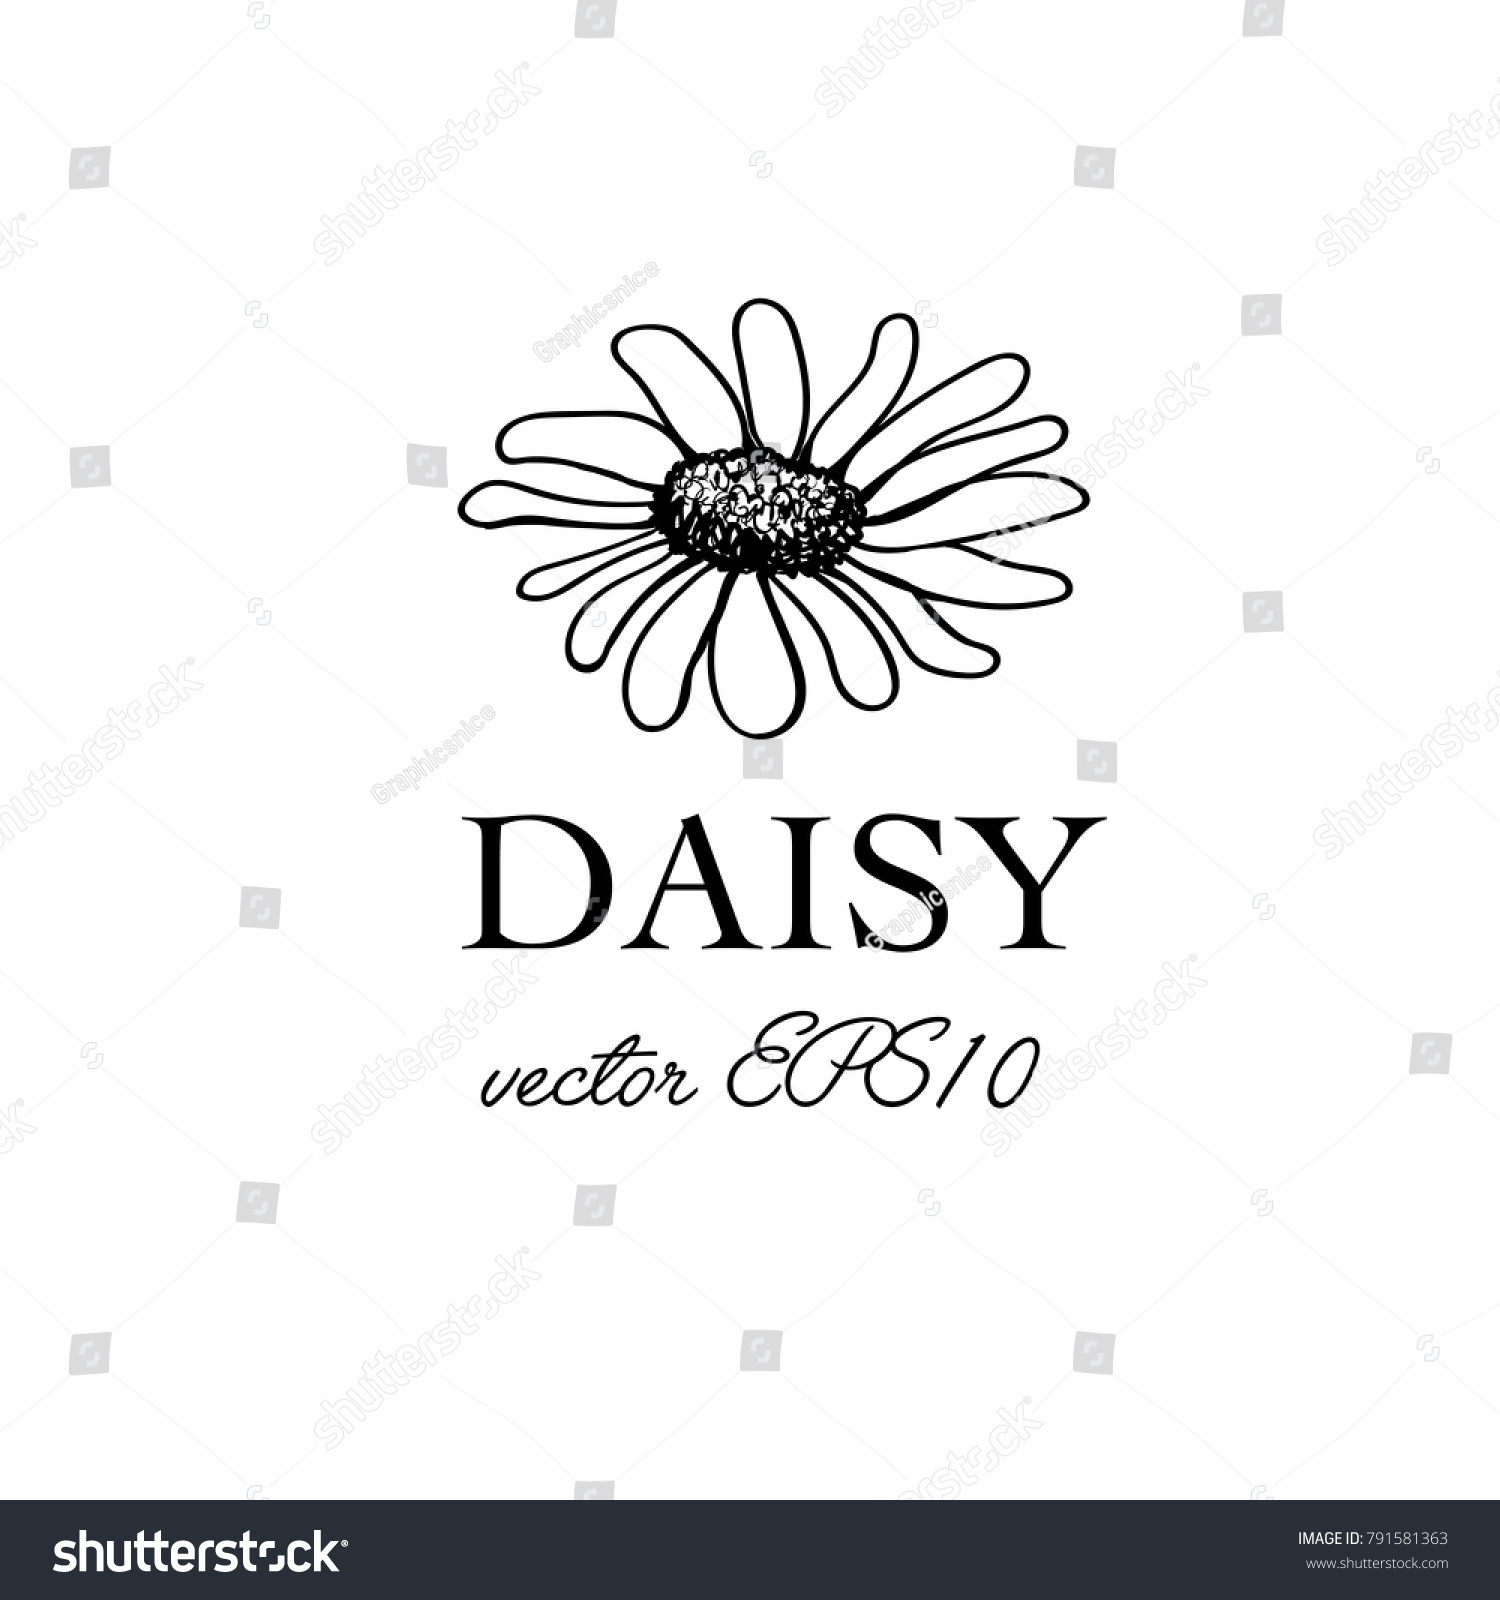 simple hand drawn daisy flower template stock vector royalty free